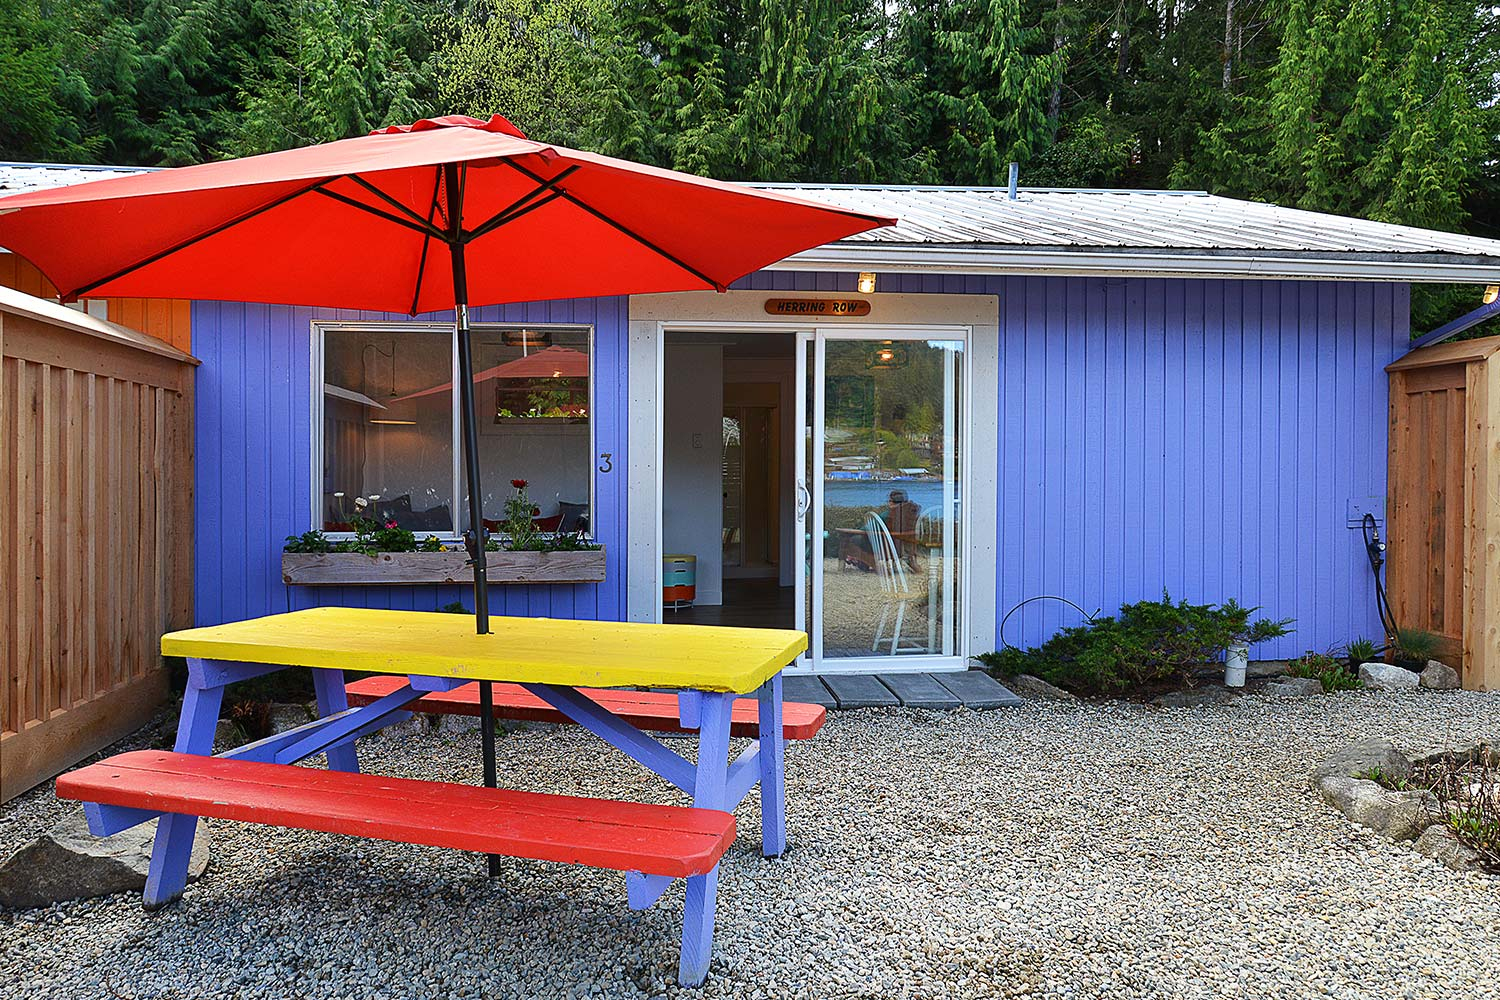 The front yard of Herring Row has a BBQ & picnic table. This purple cottage is one of 4 charming cottages at John Henry's.